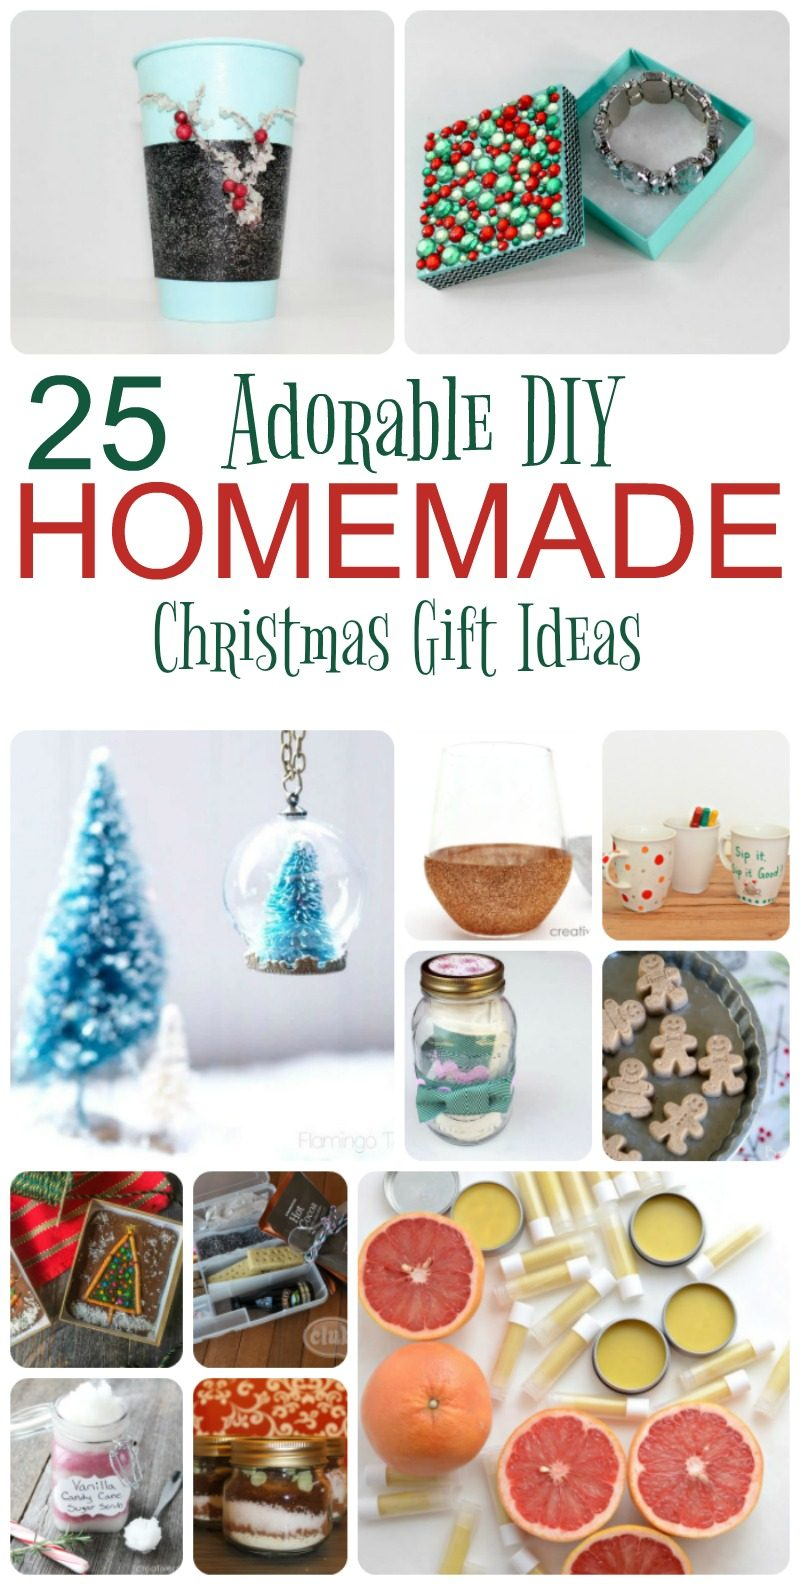 homemade christmas gift ideas 25 adorable gifts to make for pretty 31152